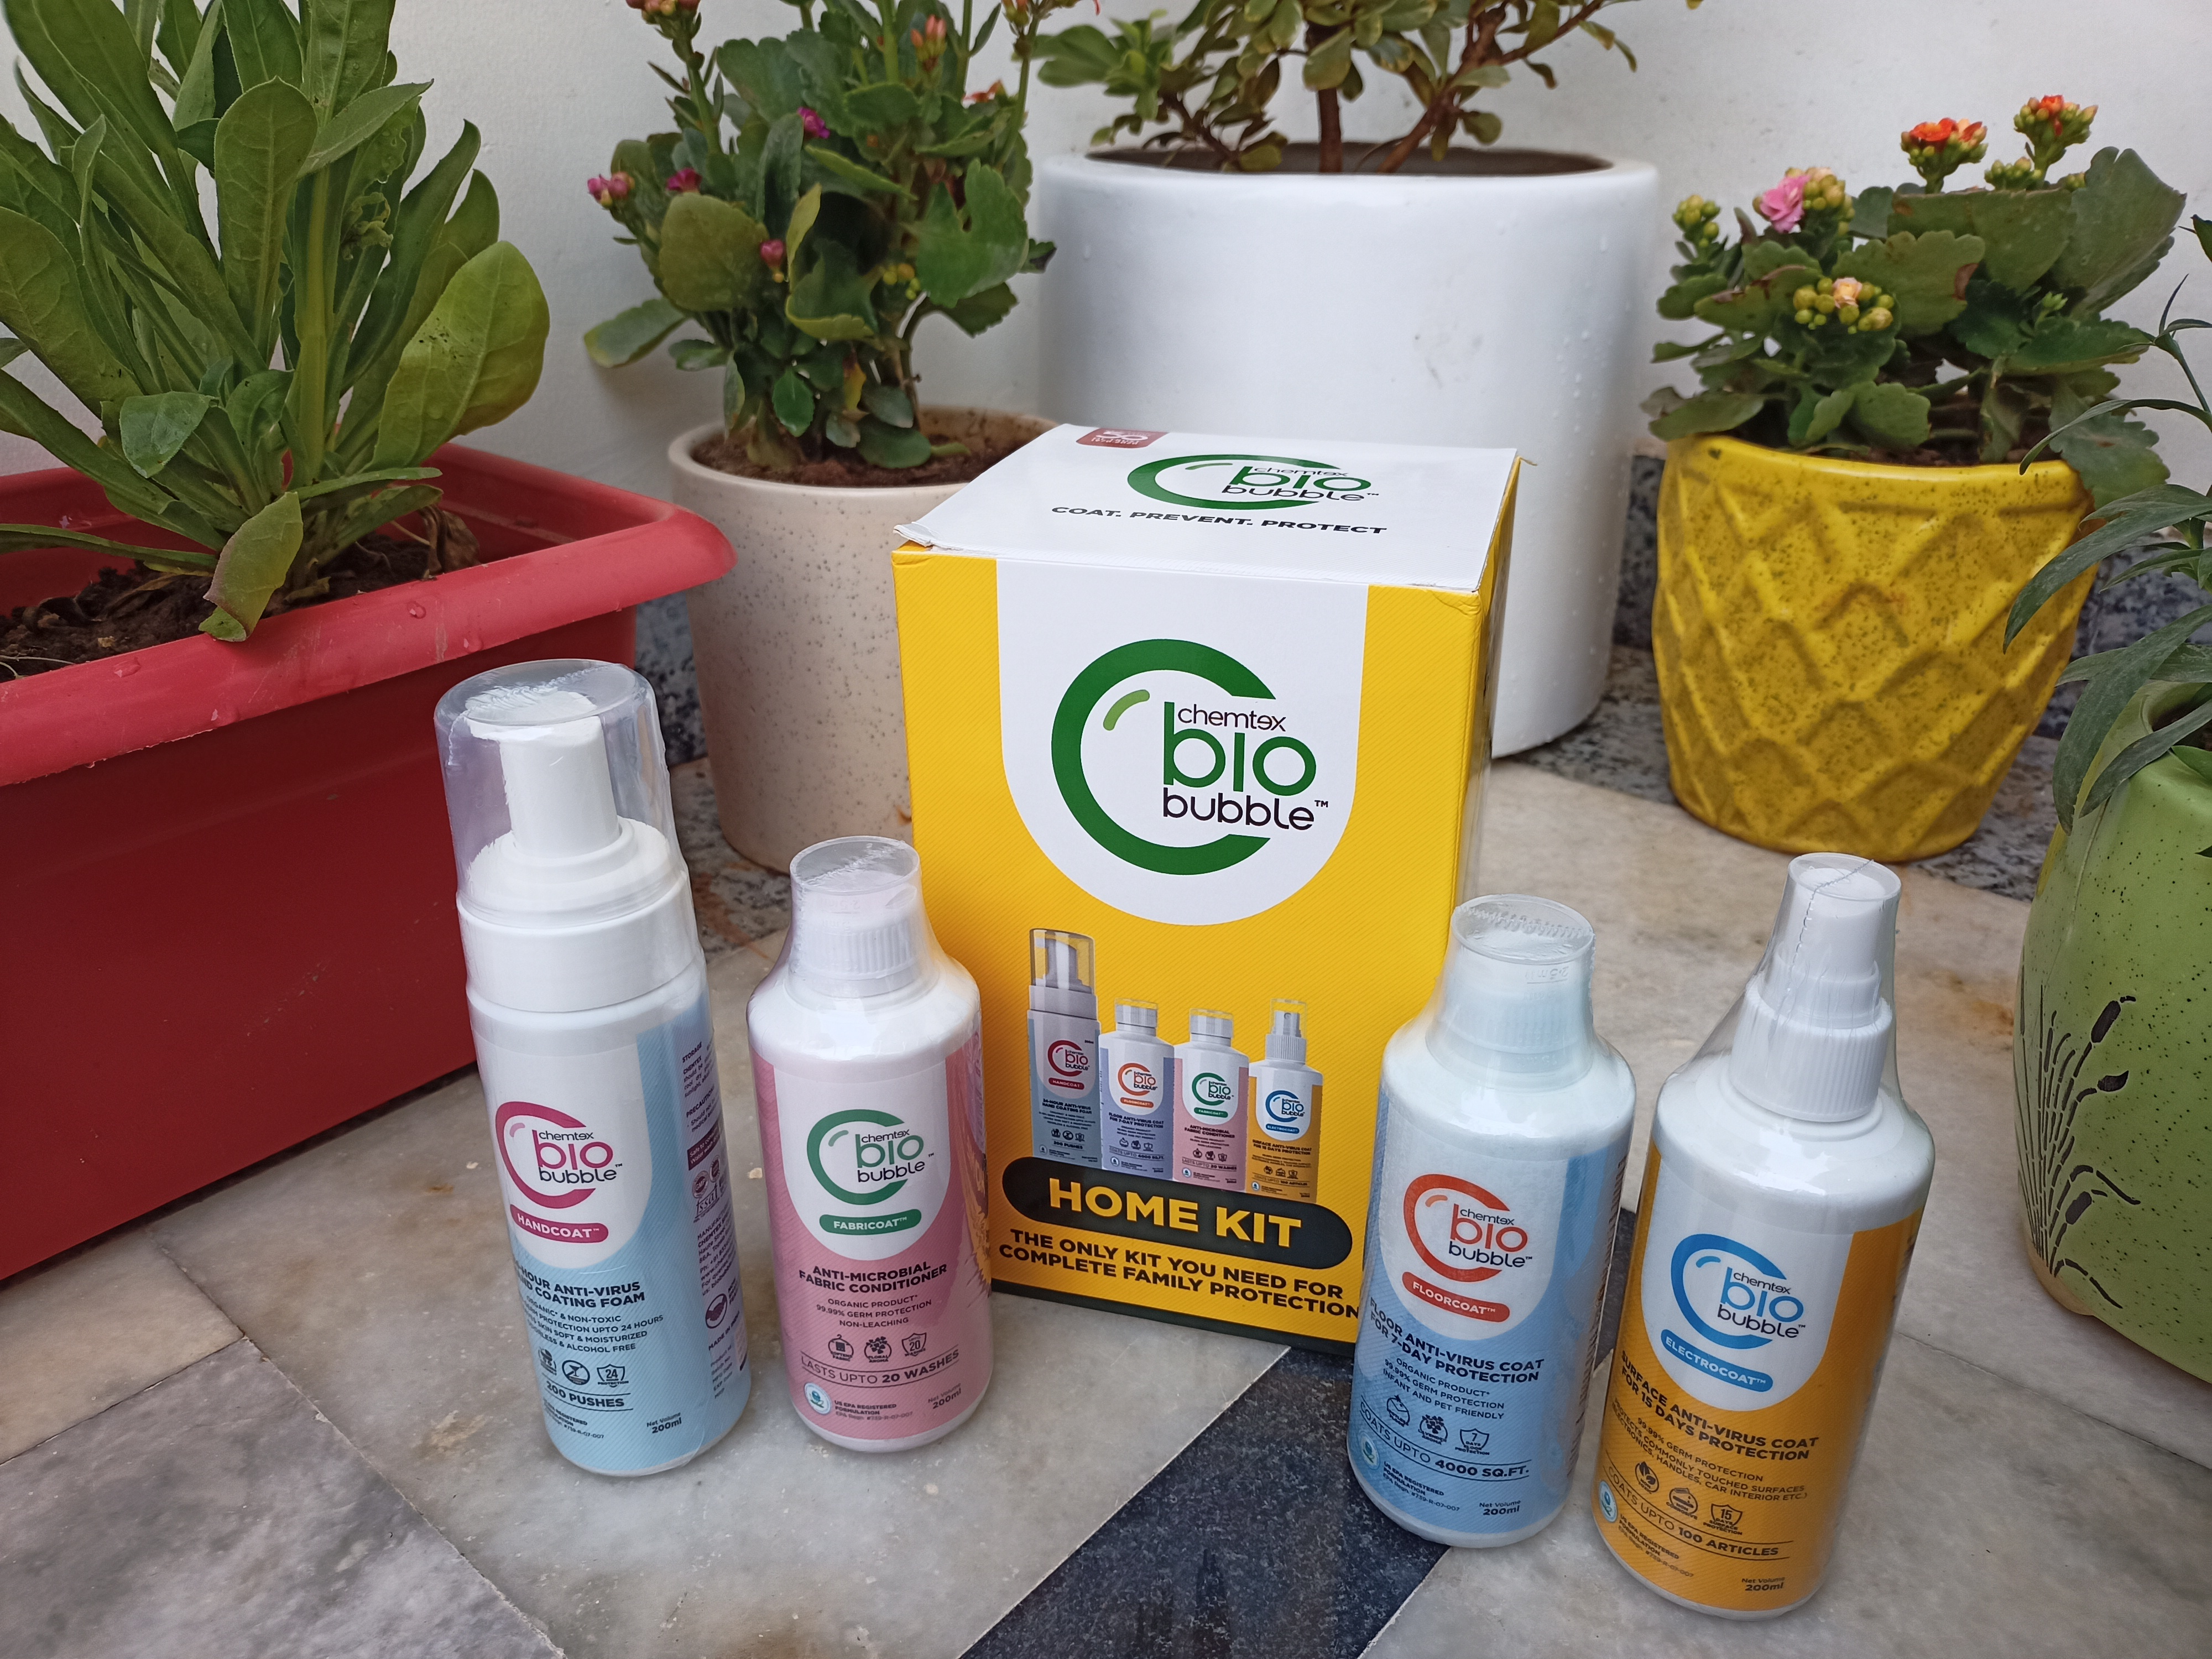 Chemtex Biobubble Home Kit-Must Have For Family Protection-By busy_at_mom